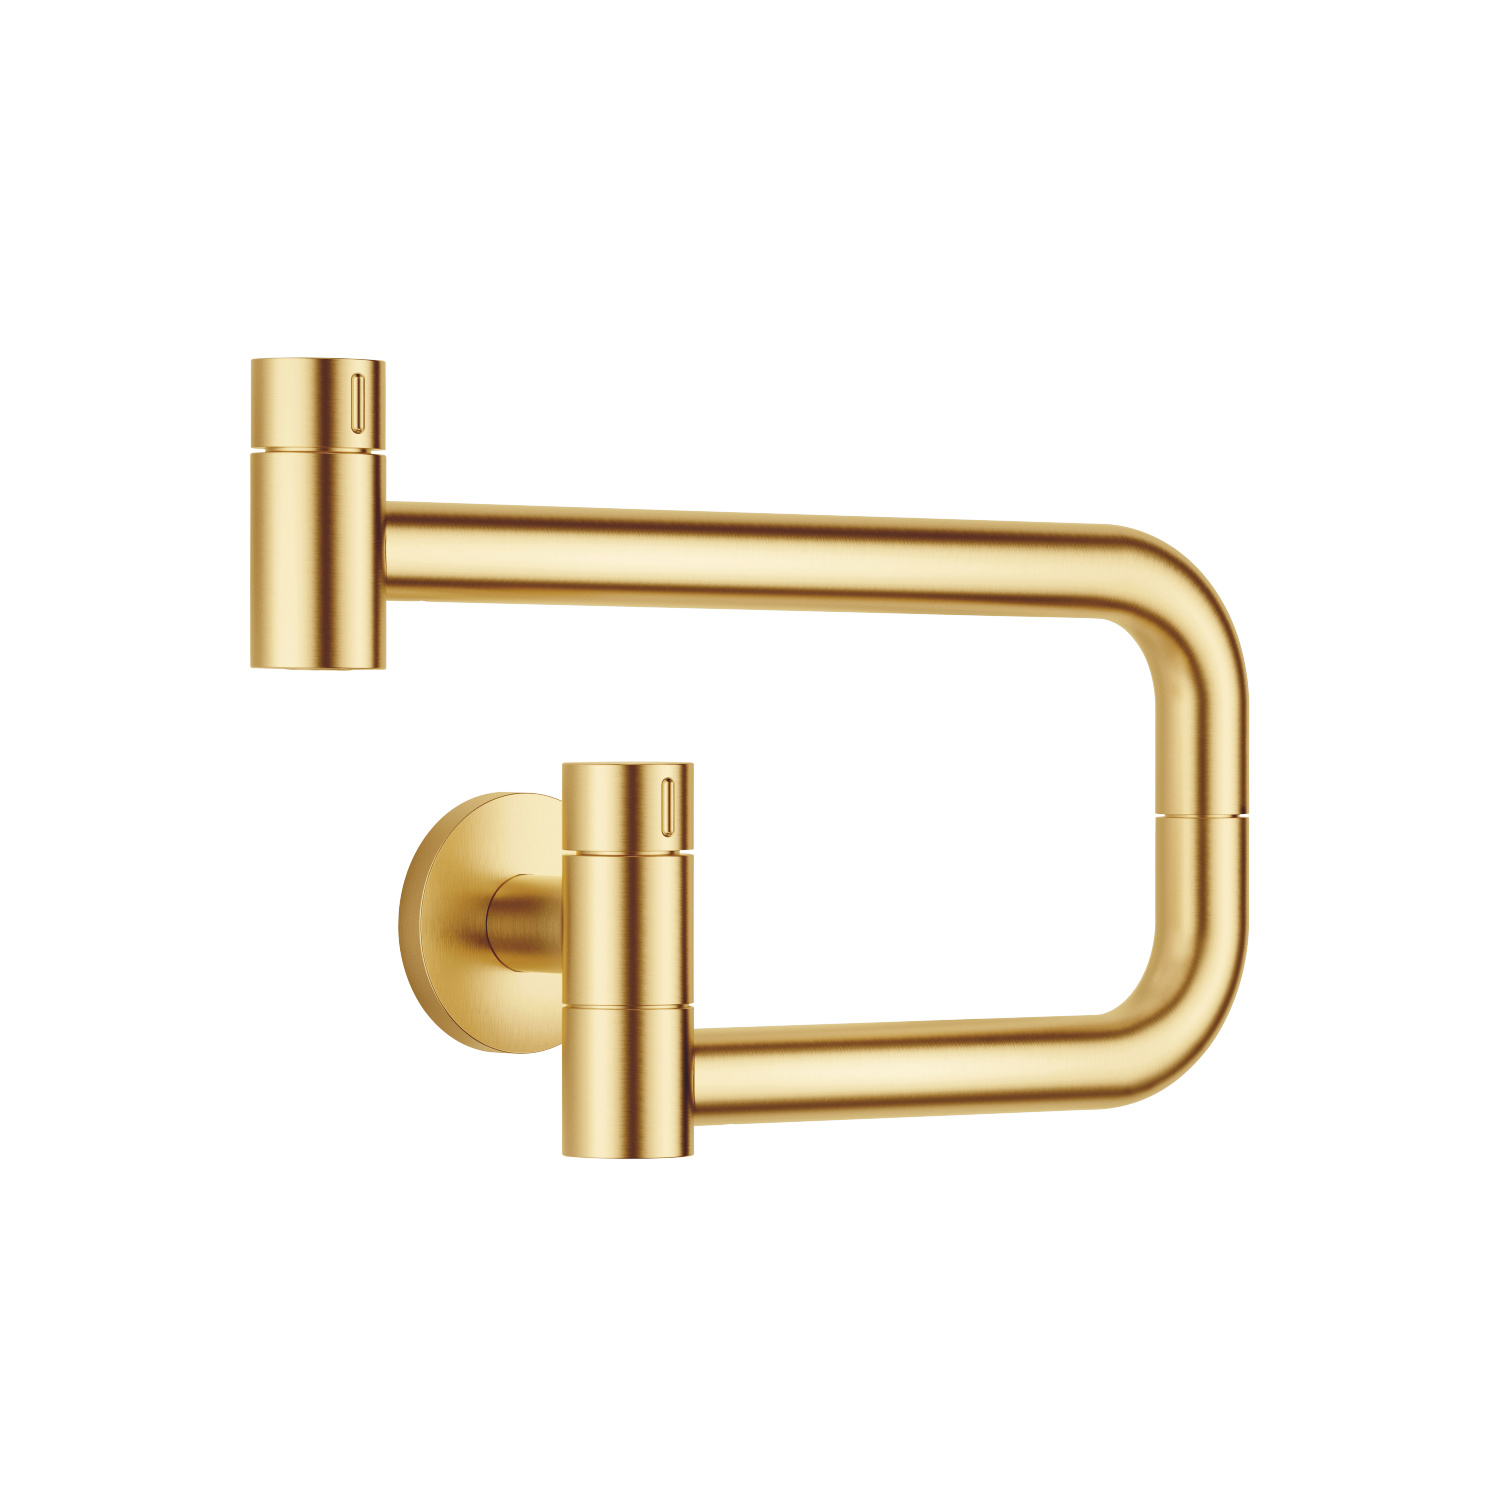 POT FILLER Cold water valve - Brushed Durabrass - 30 805 875-28